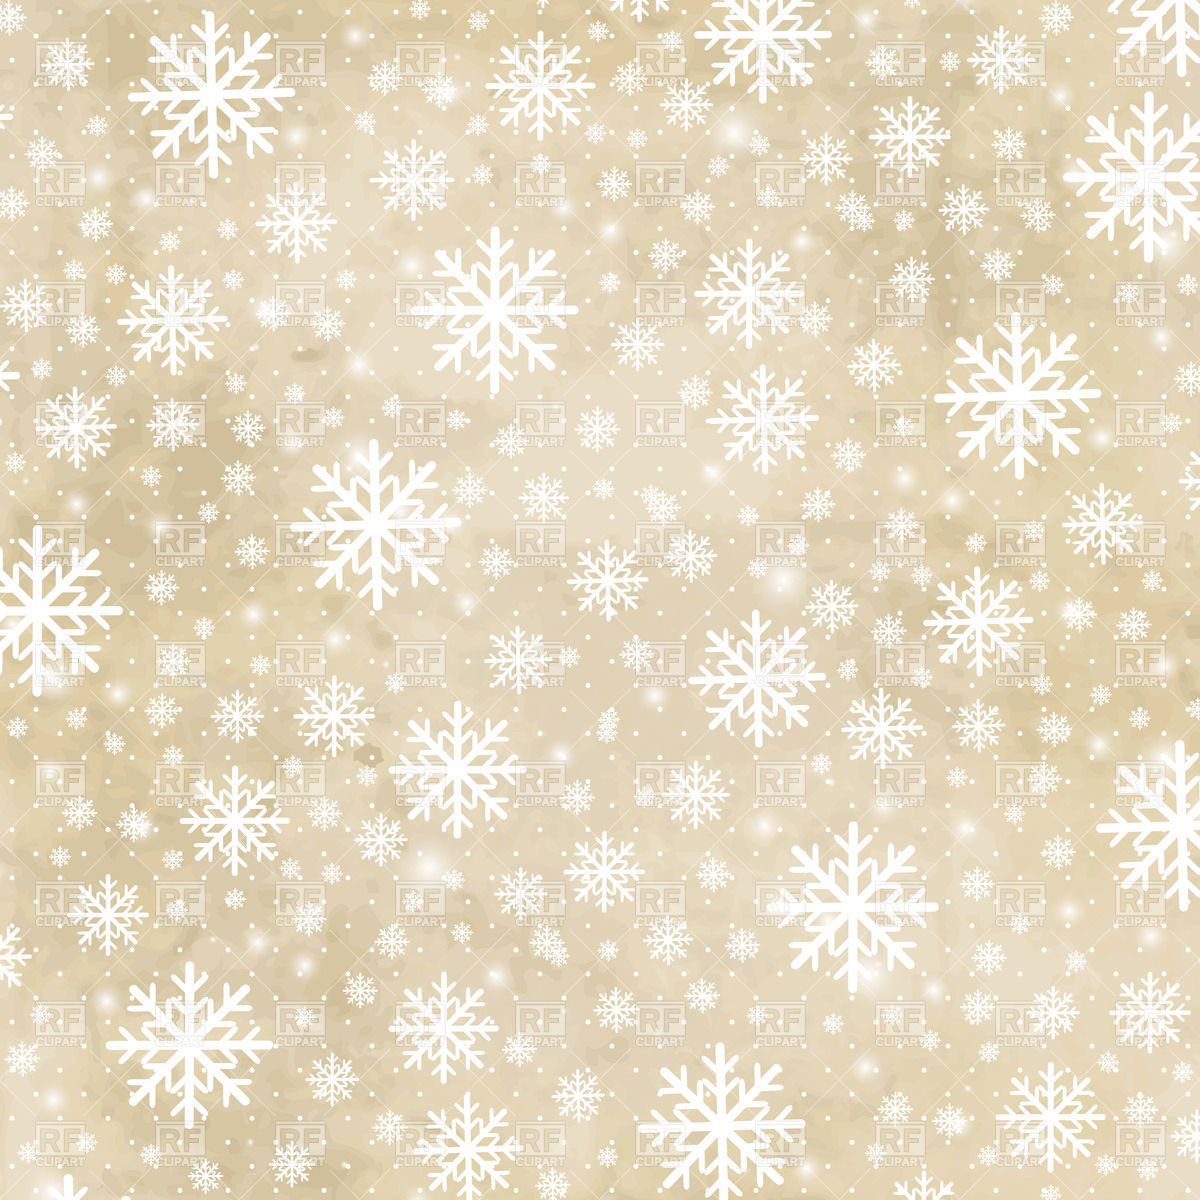 White snowflakes on beige grunge background 27773 Backgrounds 1200x1200